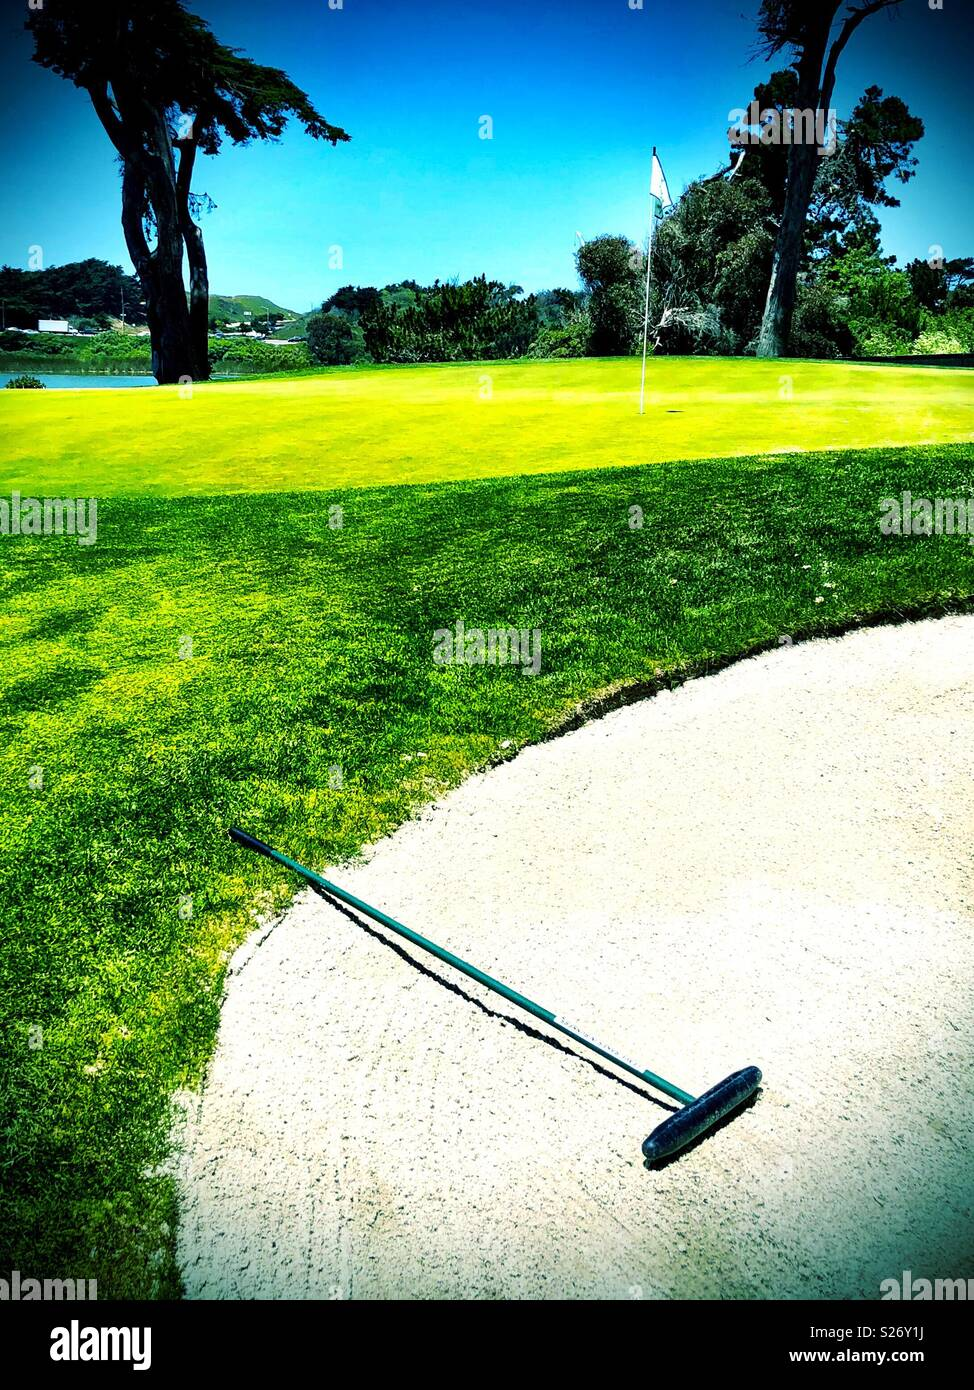 Bunker rake in sand trap with golfing green and lake in the background. - Stock Image